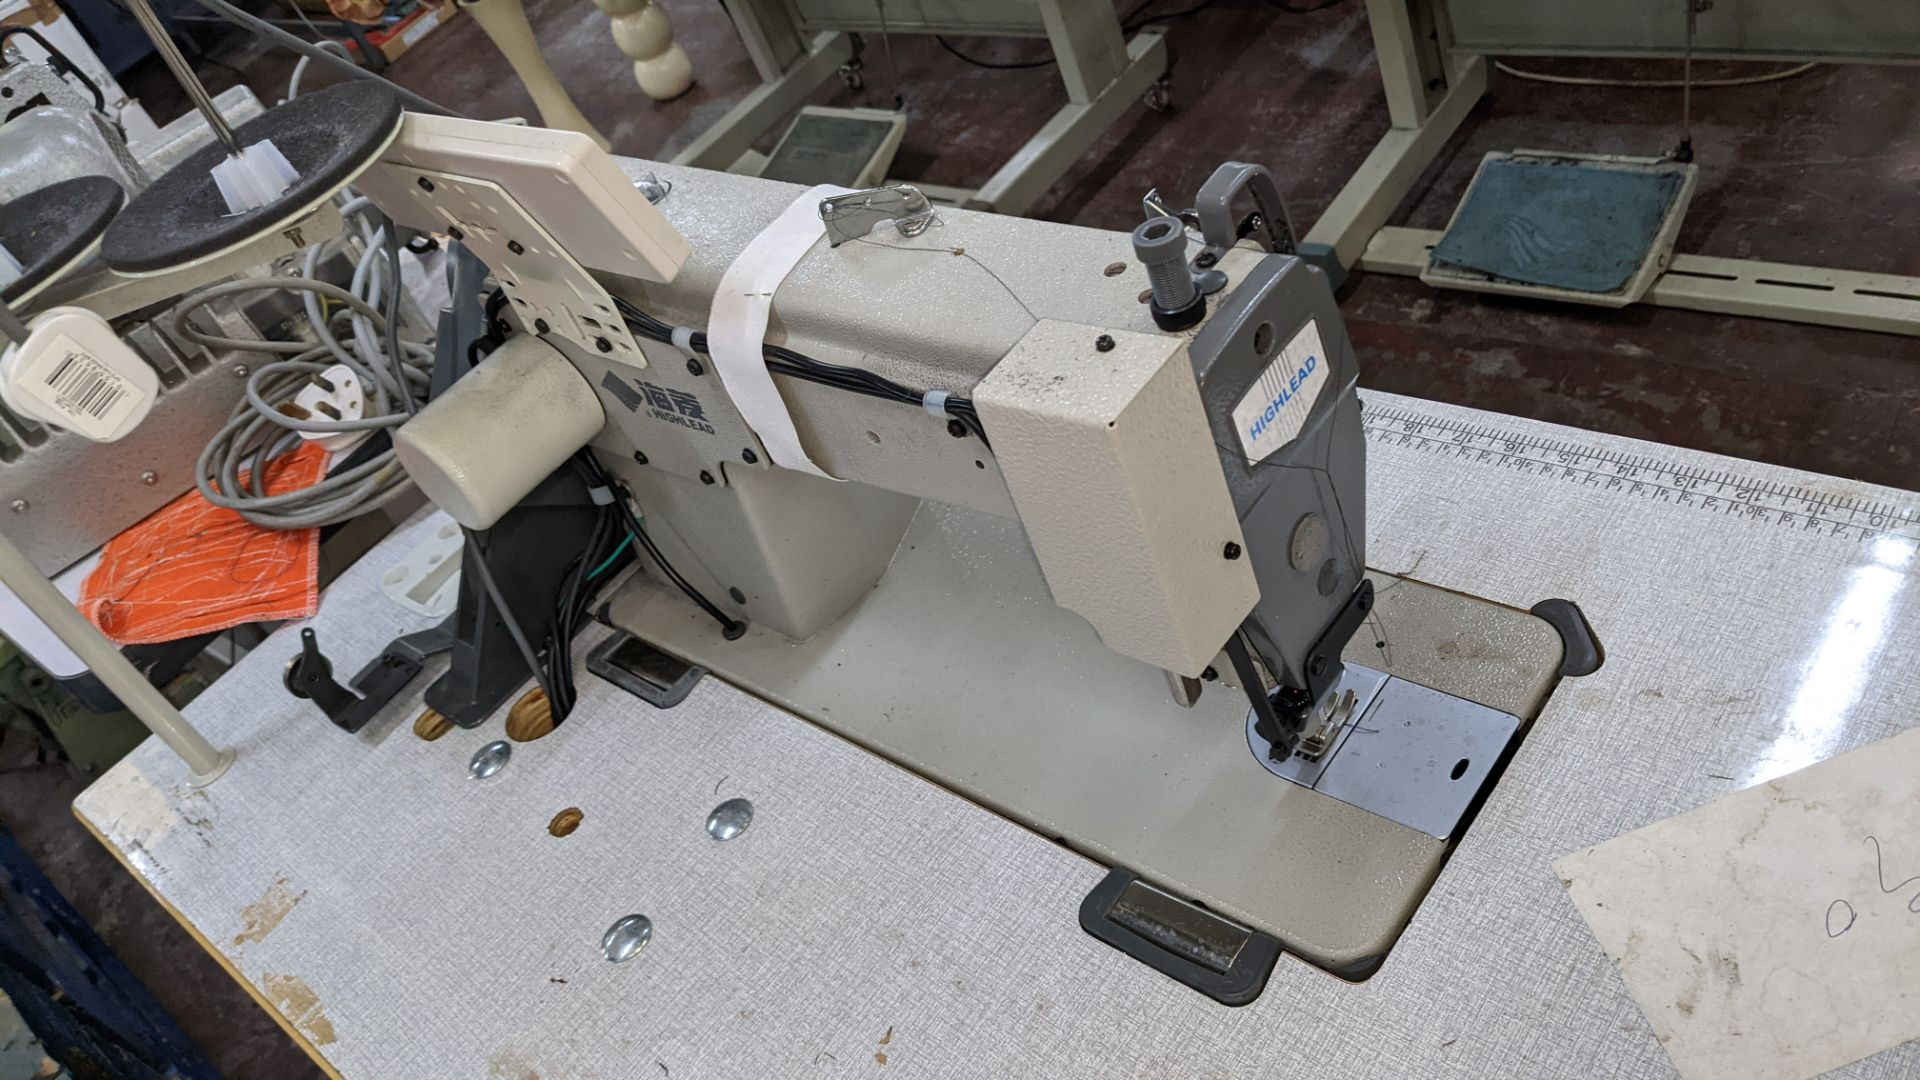 Highlead model GC128-M-D3 sewing machine - Image 12 of 18